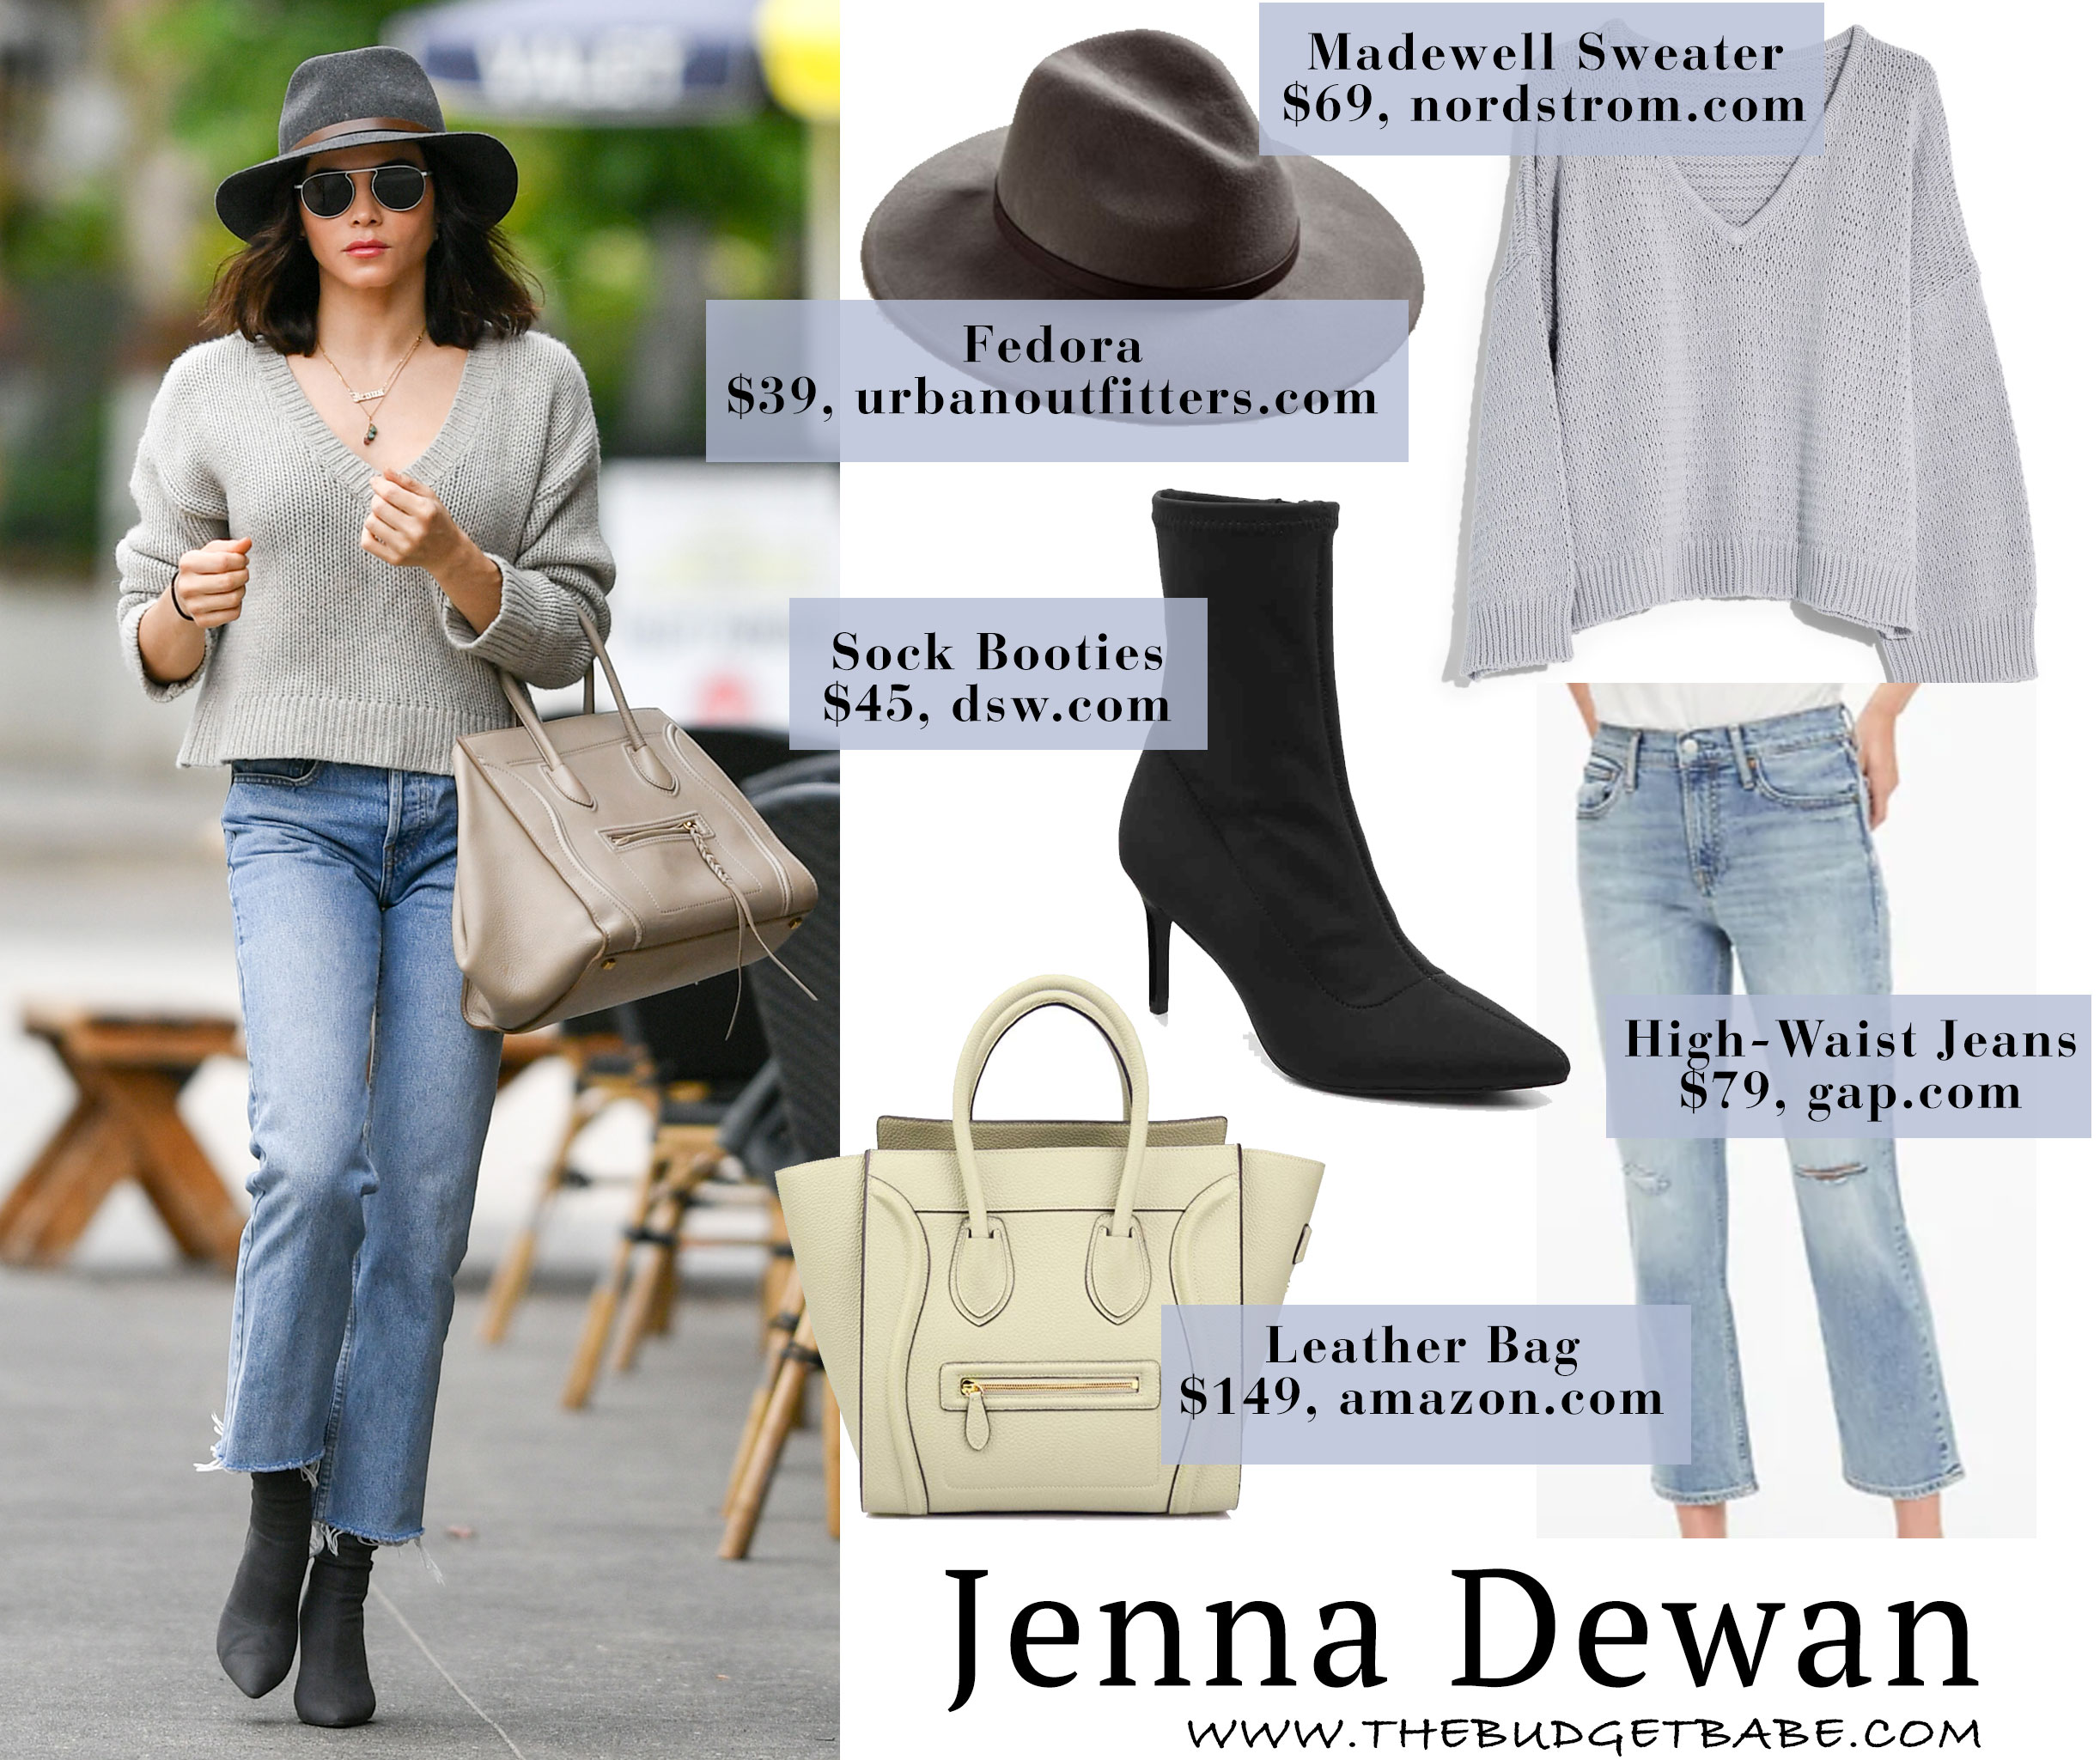 Jenna Dewan's v-neck sweater and Celine bag outfit idea for less